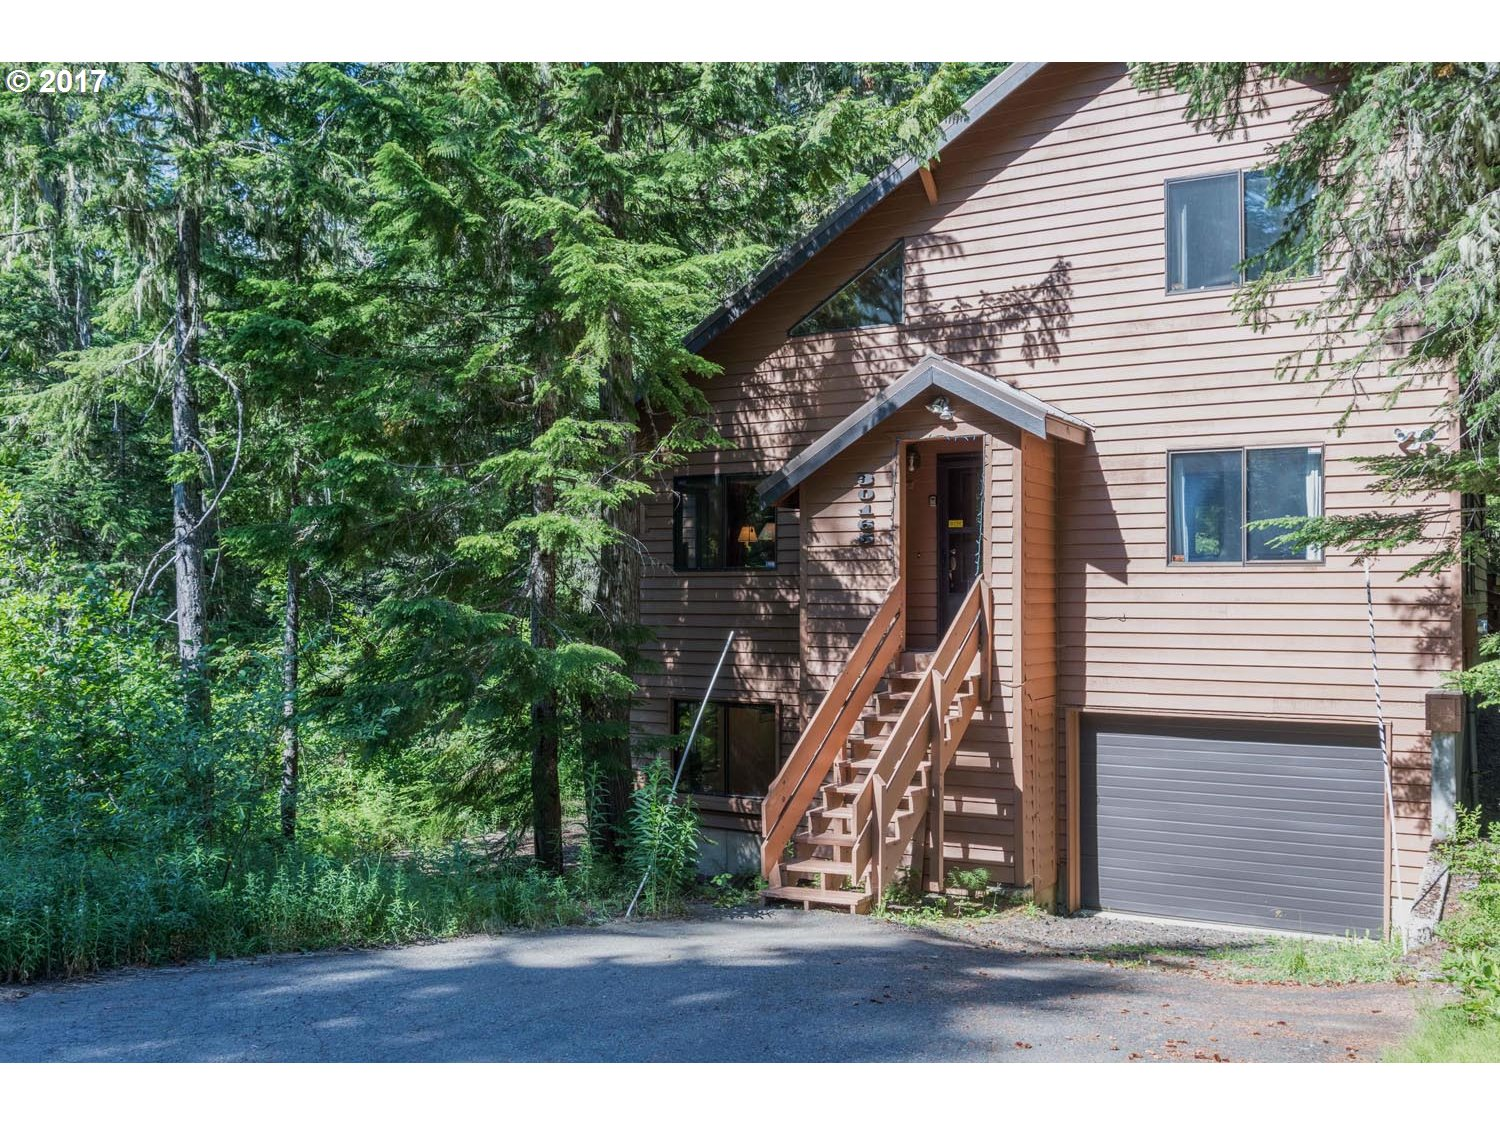 30165 E ALPEN WAY Mt Hood  Home Listings - Merit Properties Mt Hood Real Estate